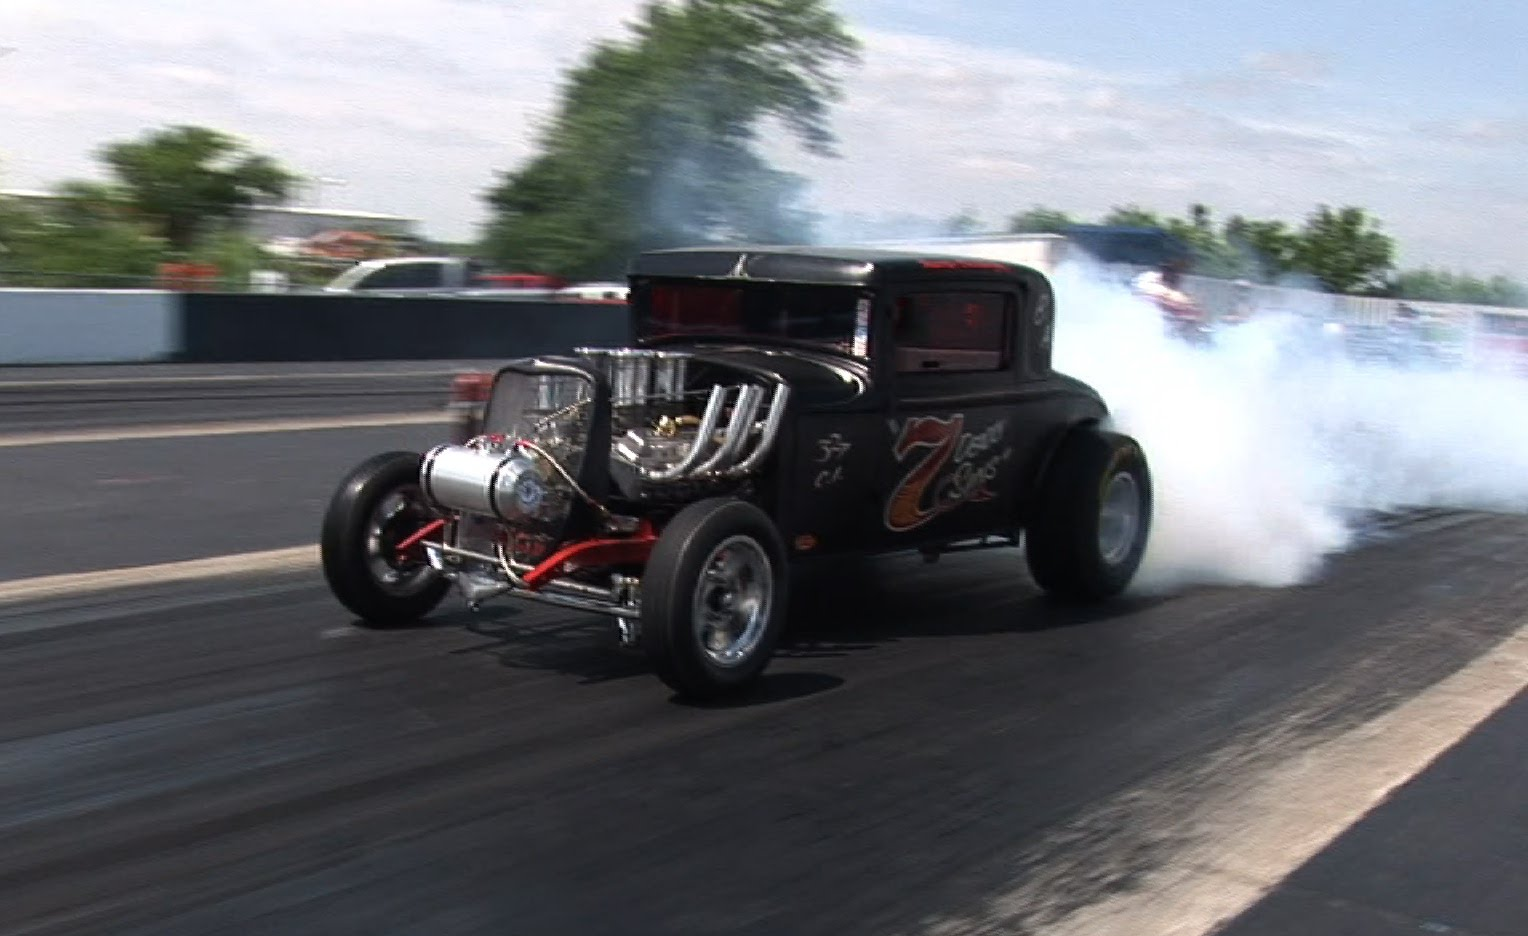 Check Out This Old School Gasser Drag Racing